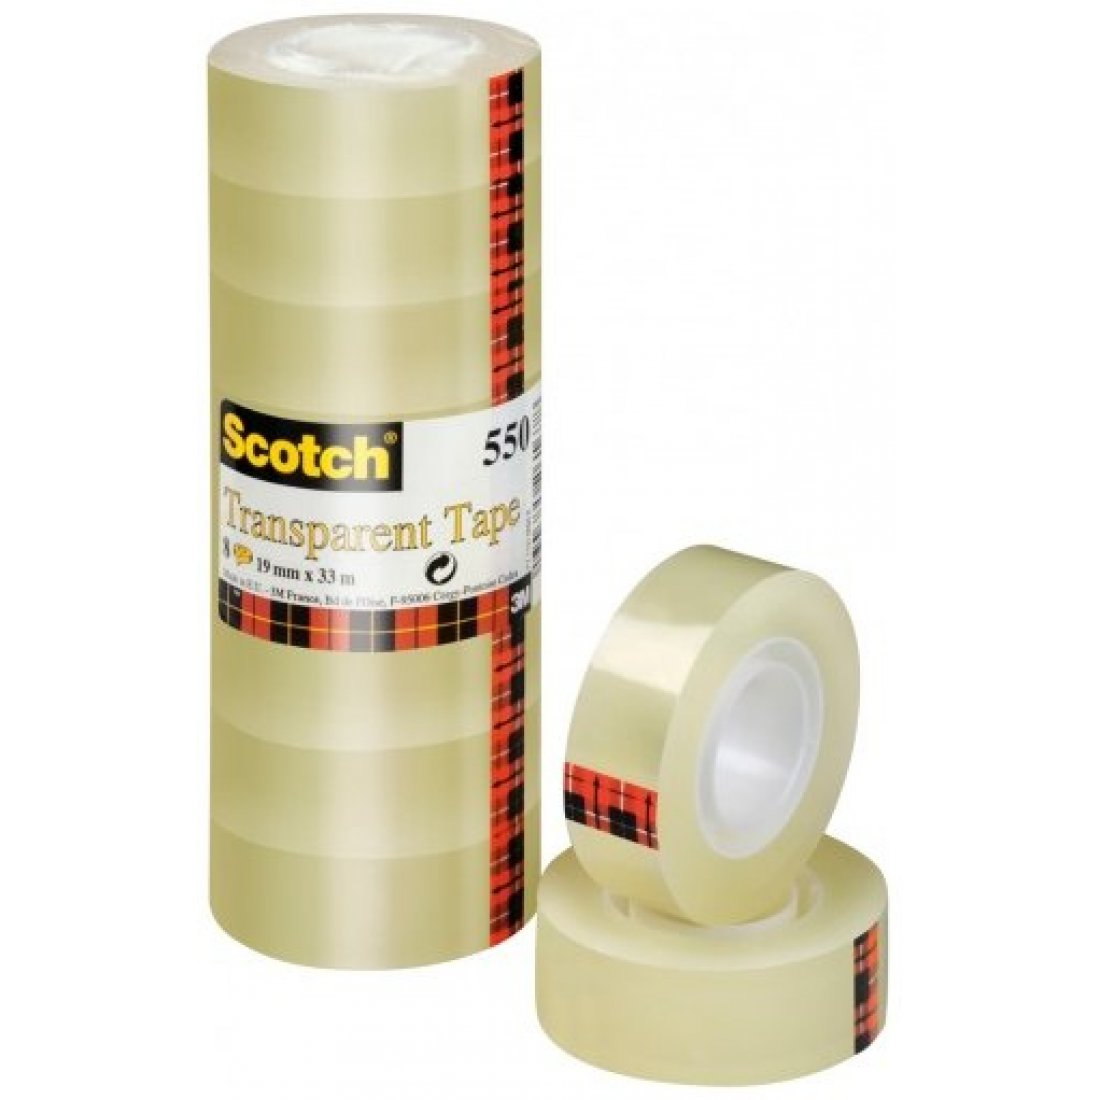 SCOTCH 550 TRANSPARANTE TAPE 19X33 8ST